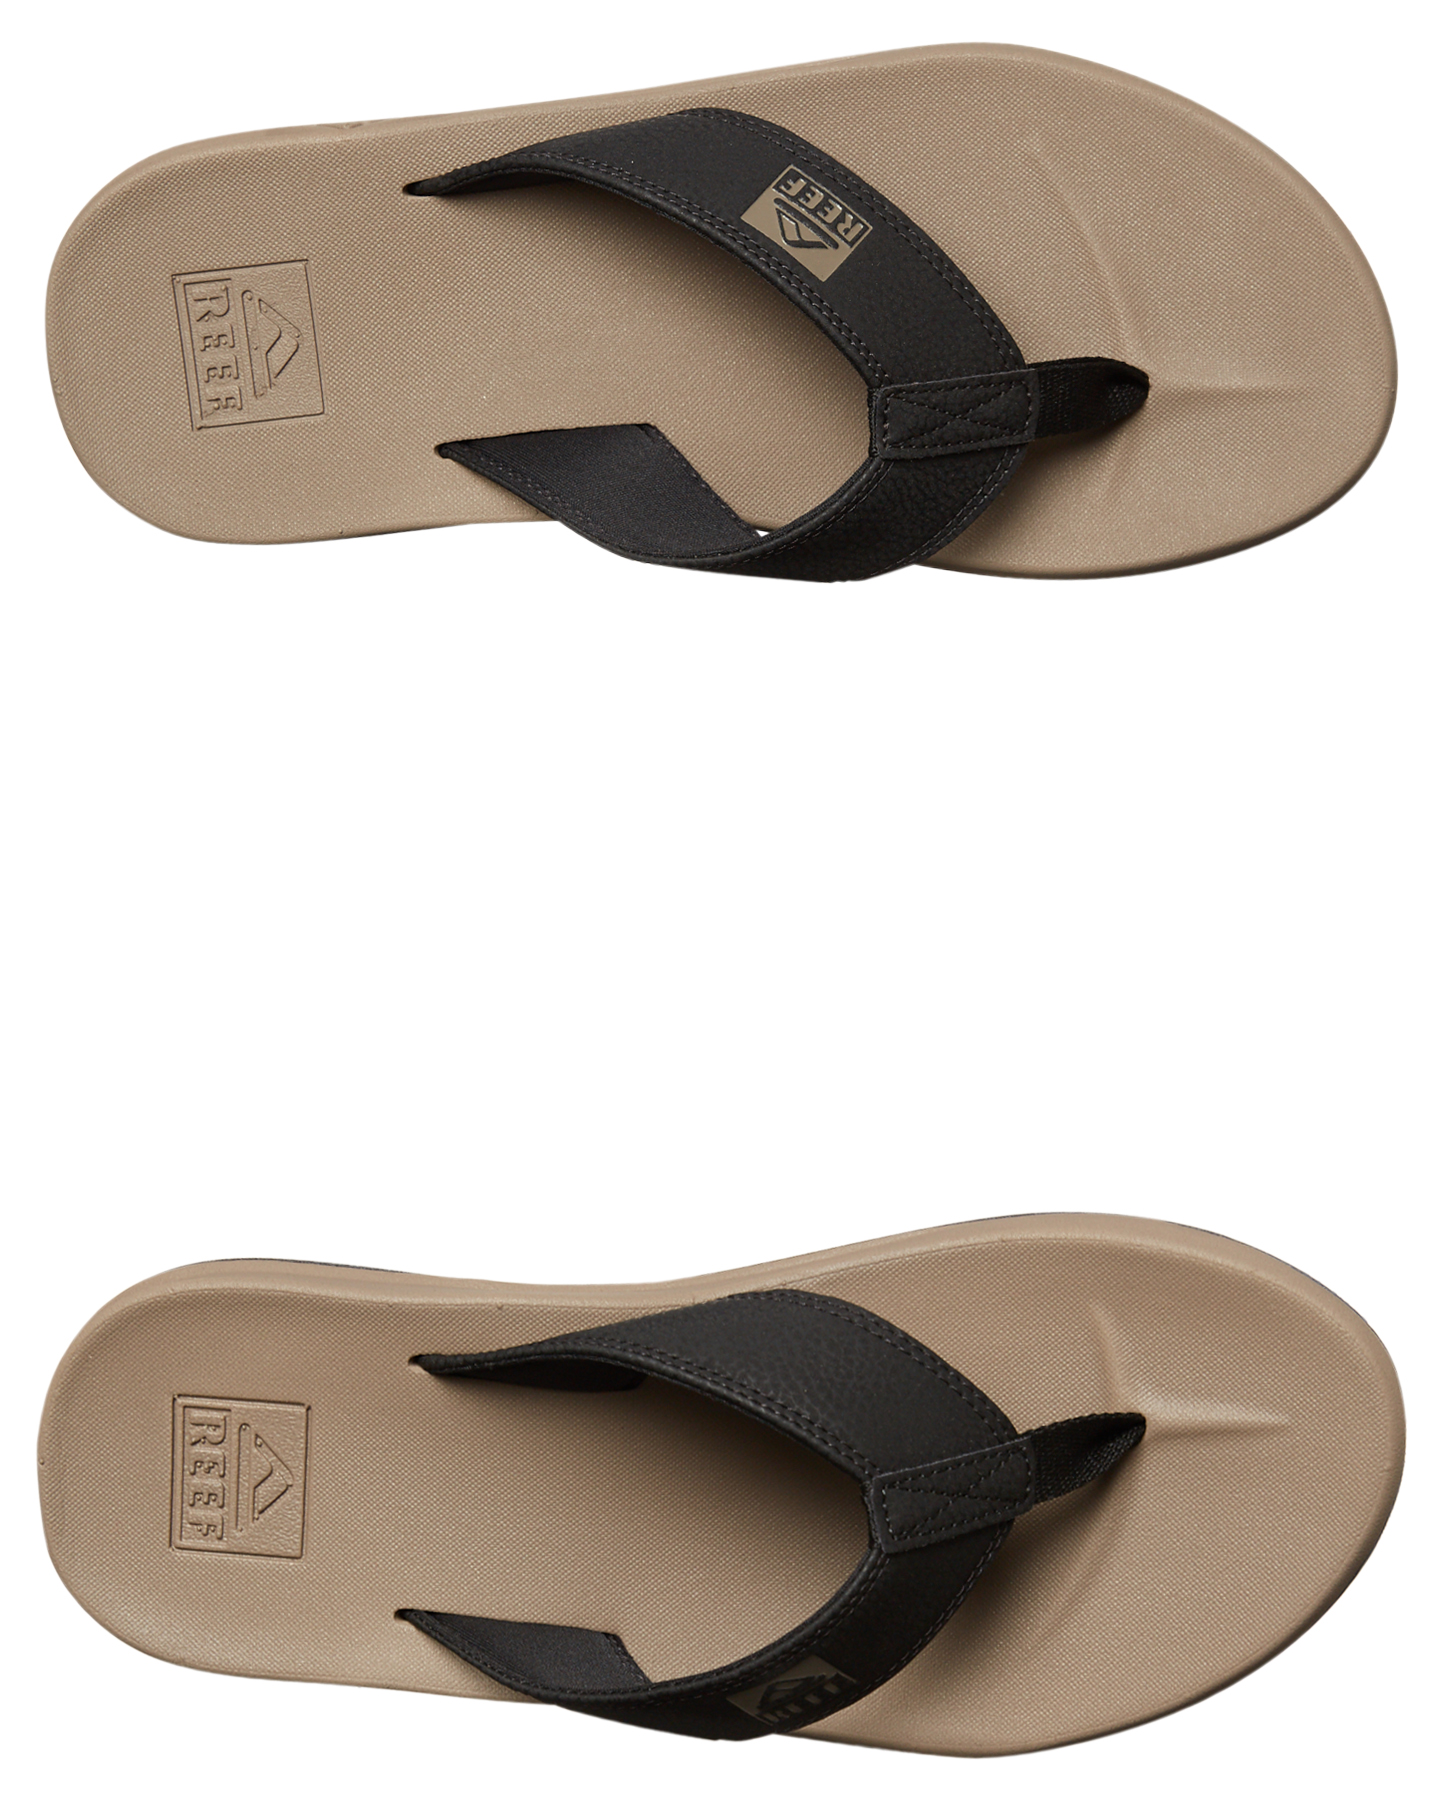 5c35860bb110 BLACK FOSSIL MENS FOOTWEAR REEF THONGS - 2045BFS ...